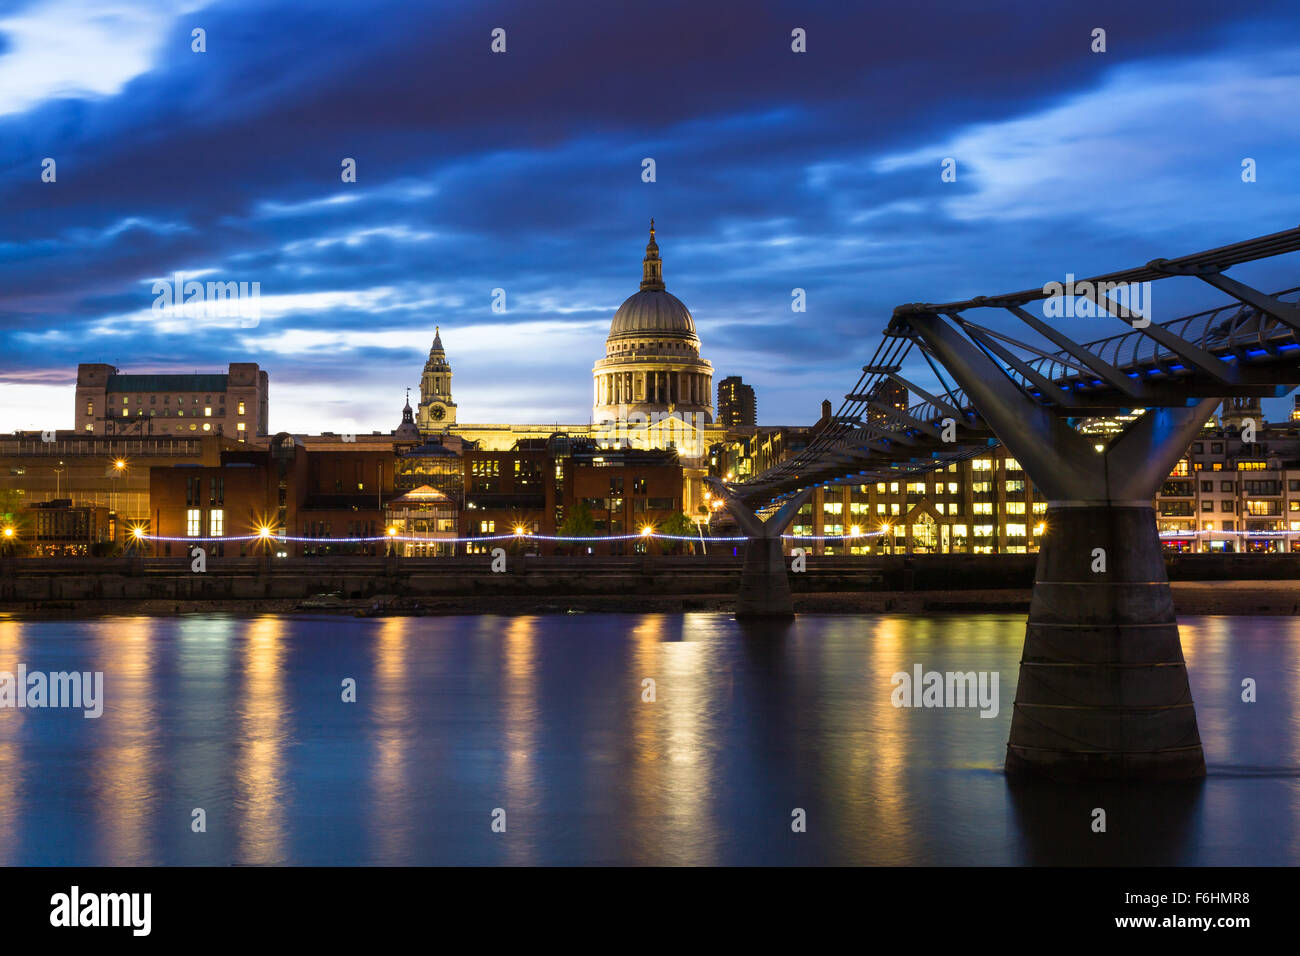 Twilight at St. Paul's cathedral, London, England Stock Photo